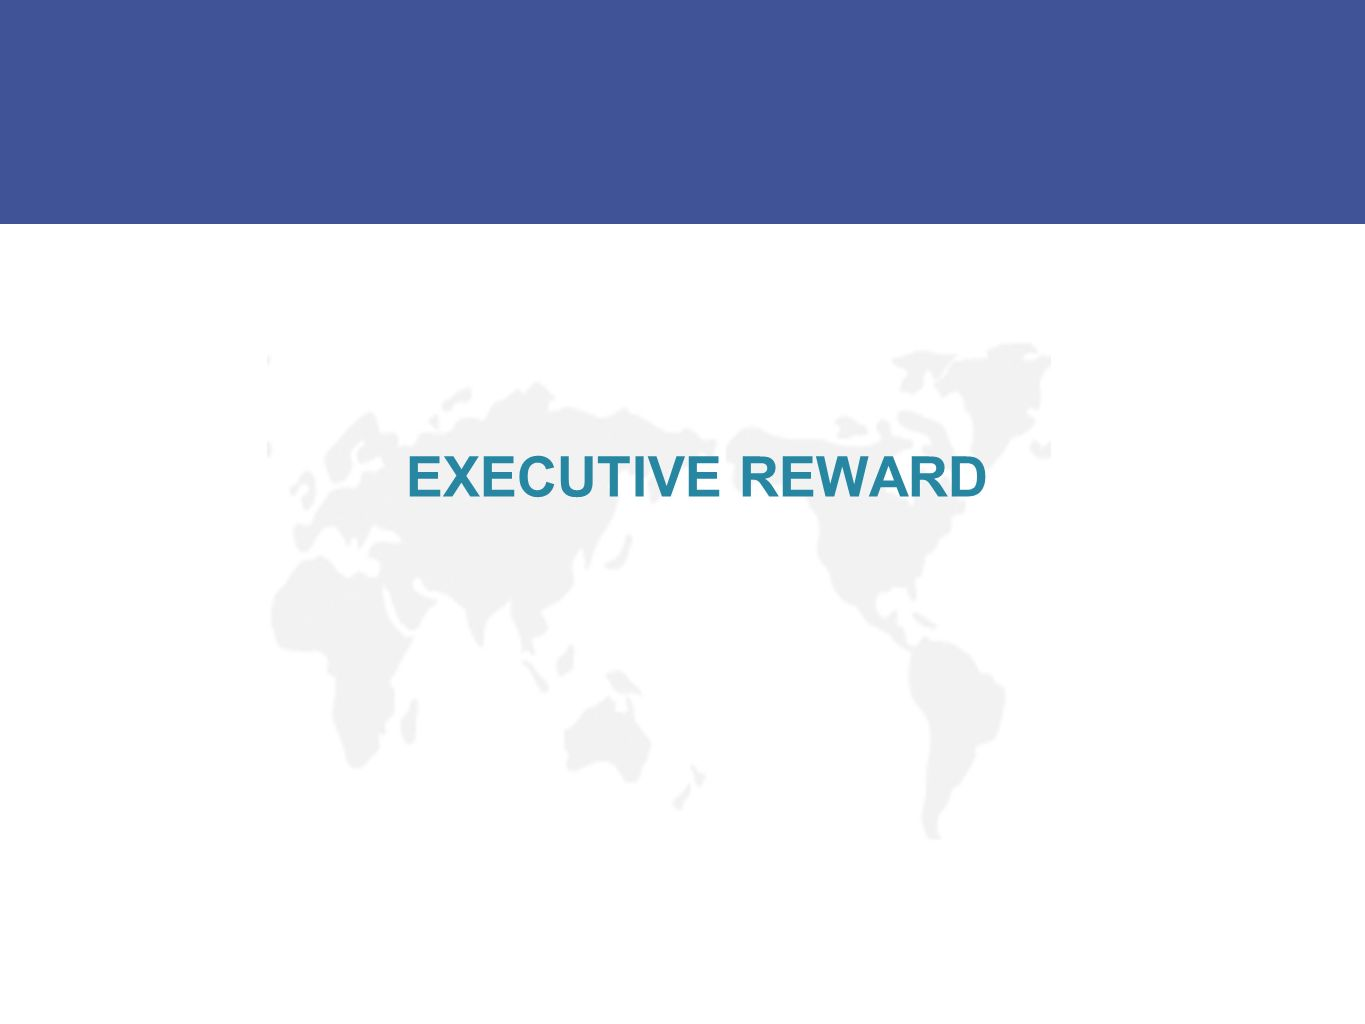 EXECUTIVE REWARD